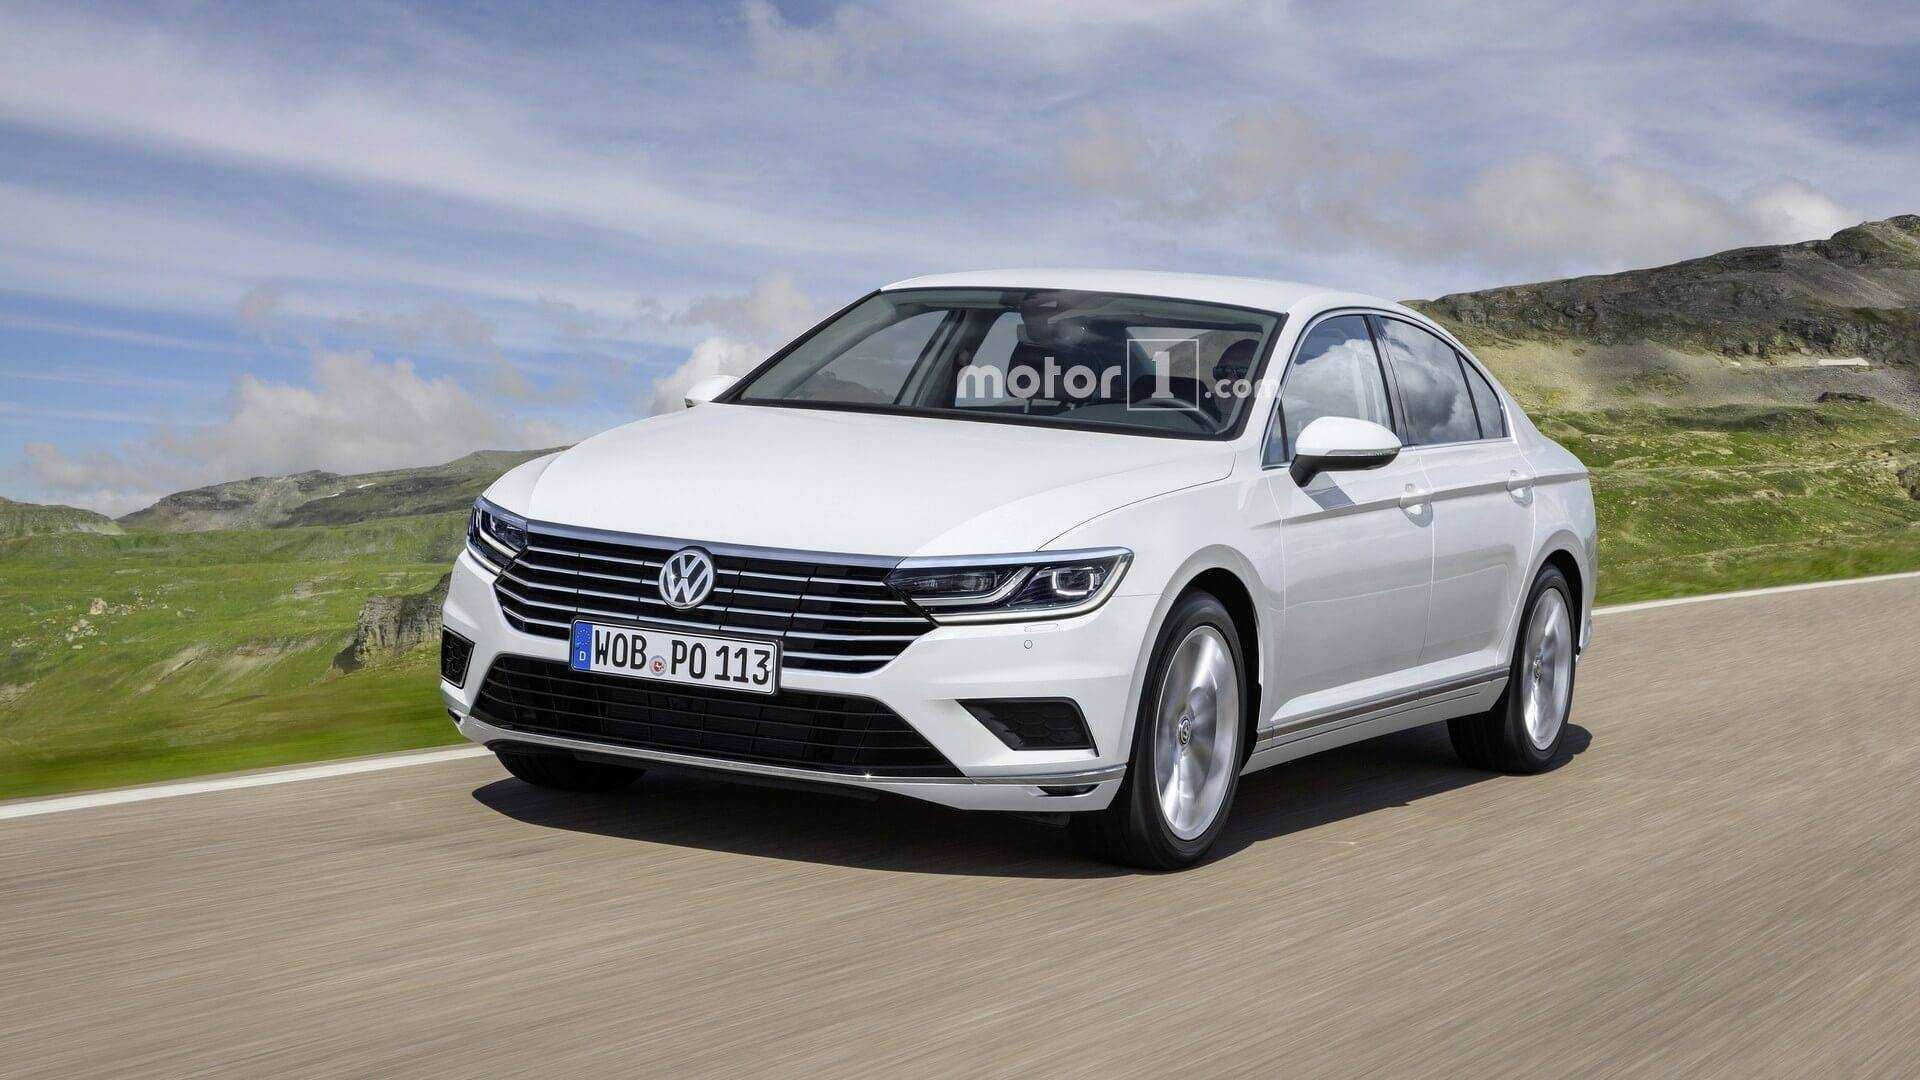 71 All New 2019 Volkswagen Release Date Picture